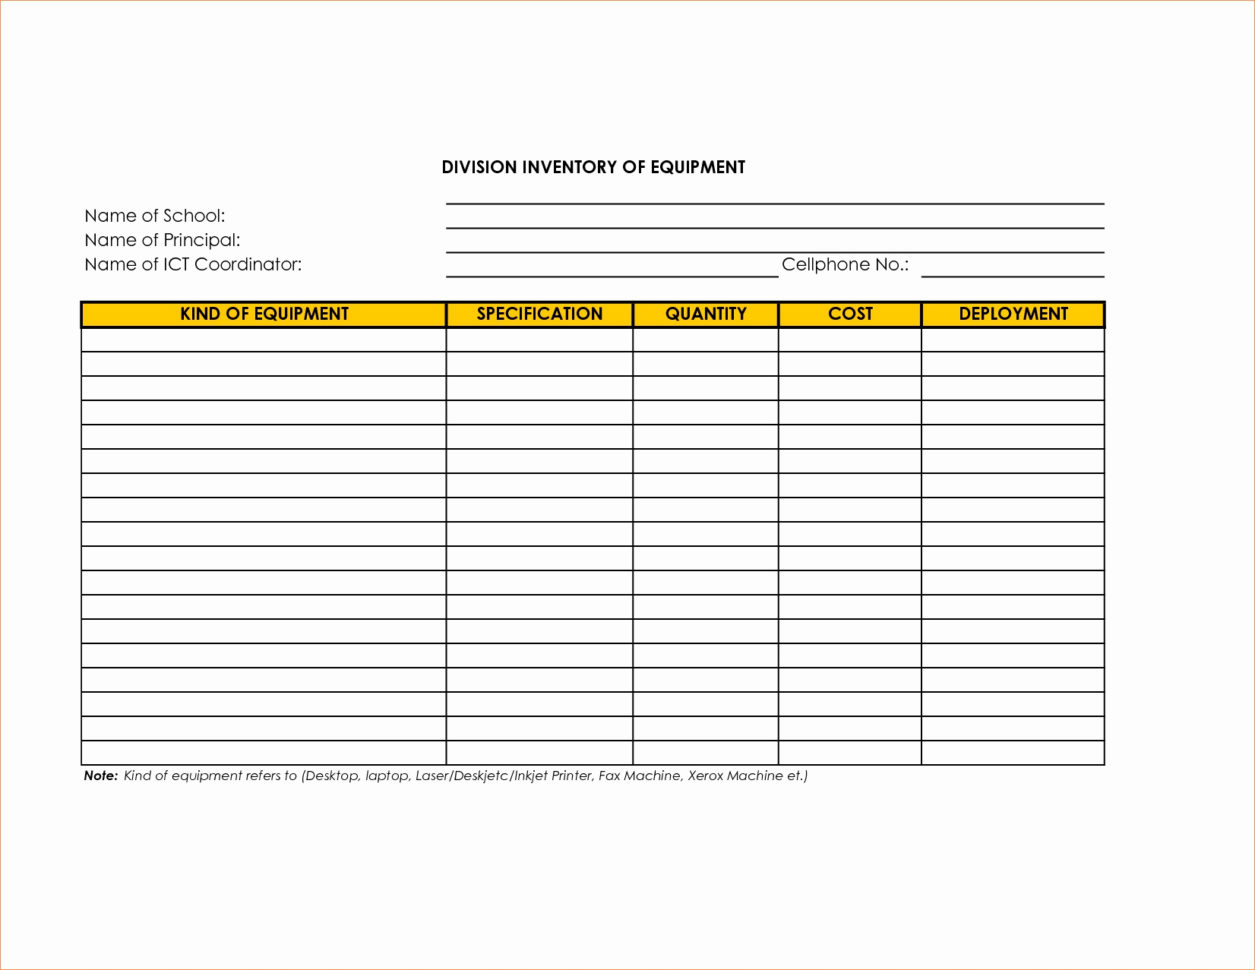 Liquor Cost Spreadsheet Excel Unique Medical Supply Inventory With Costing Spreadsheet Template